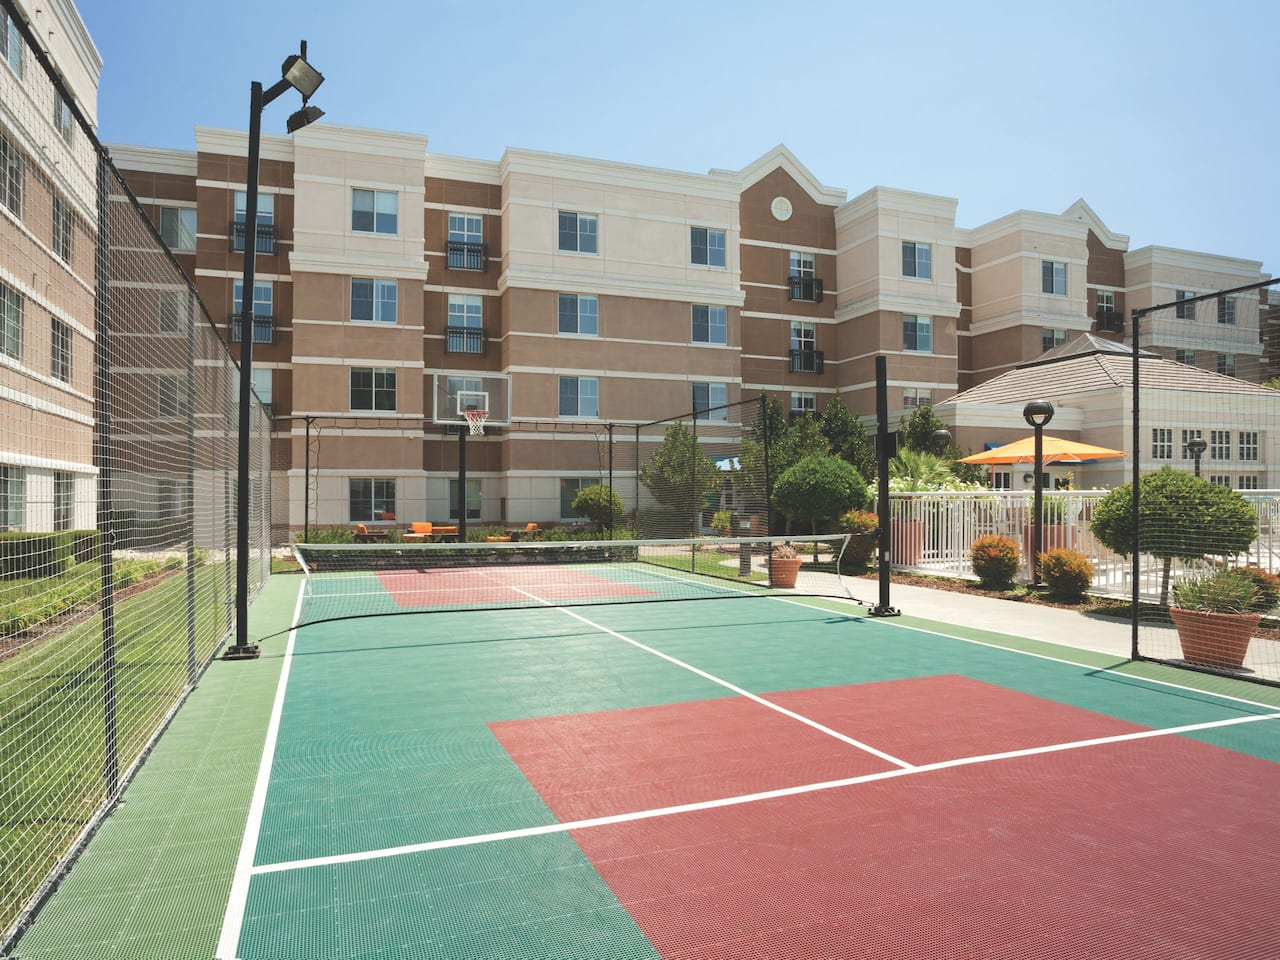 Hyatt House Sports Court